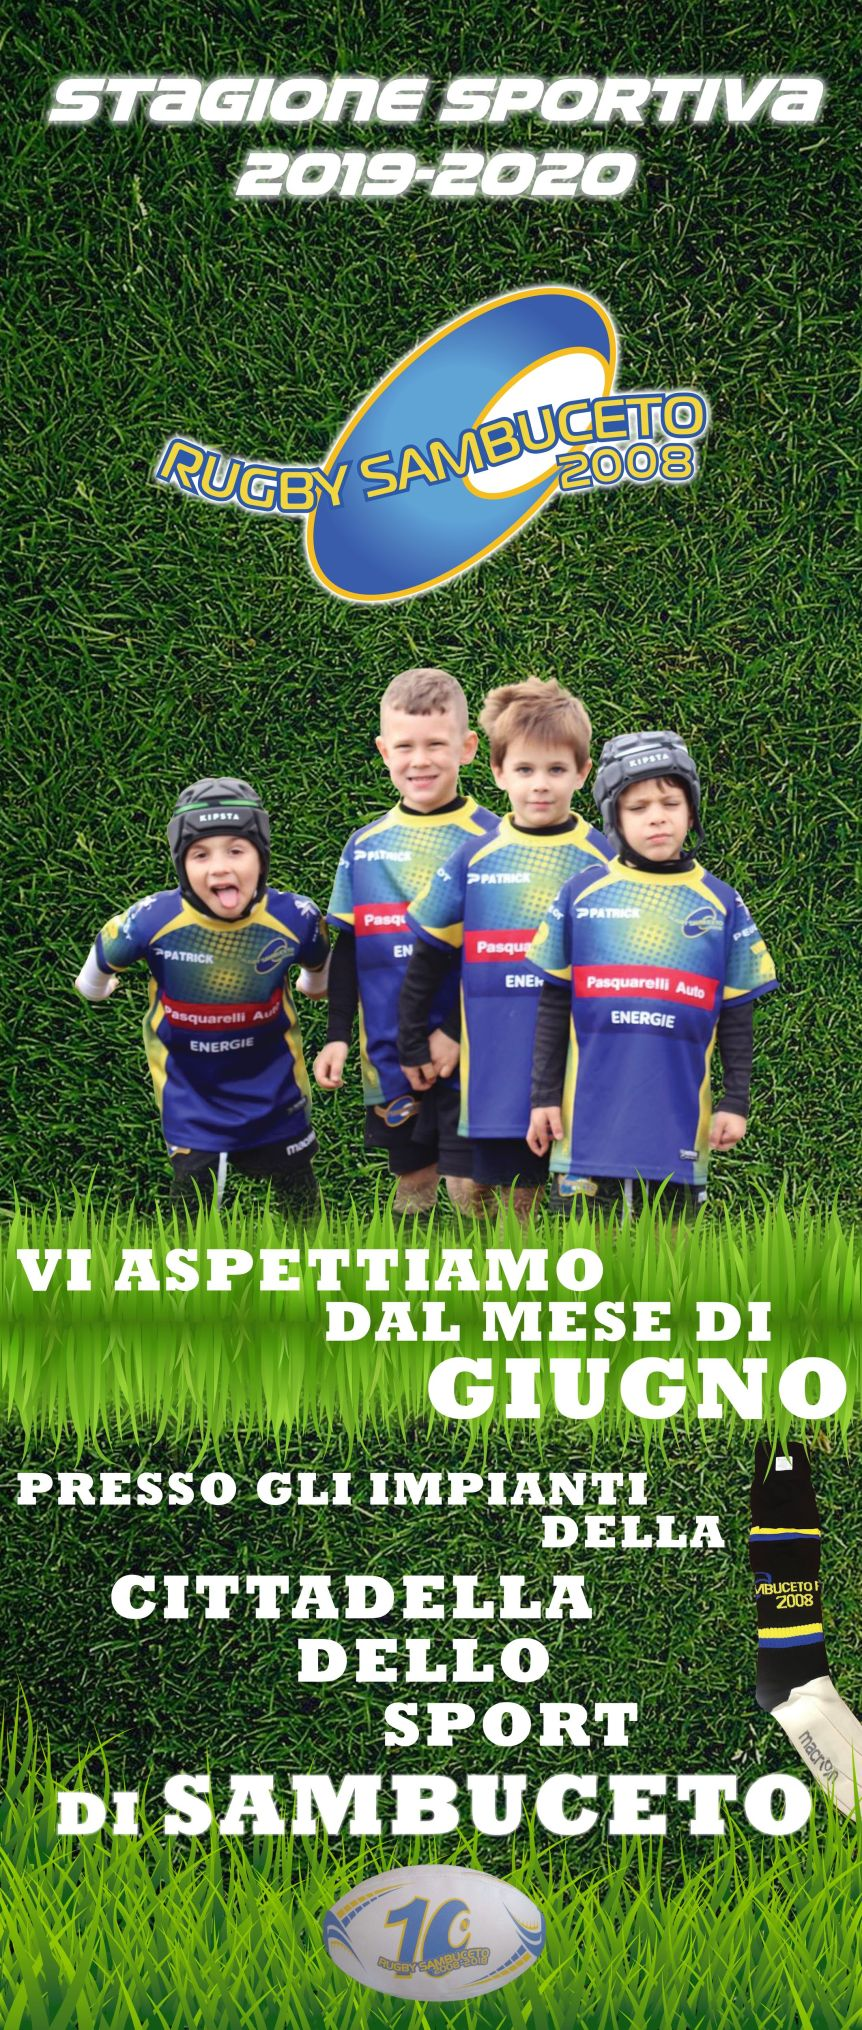 Roll Up - Sambuceto Rugby copia.jpg